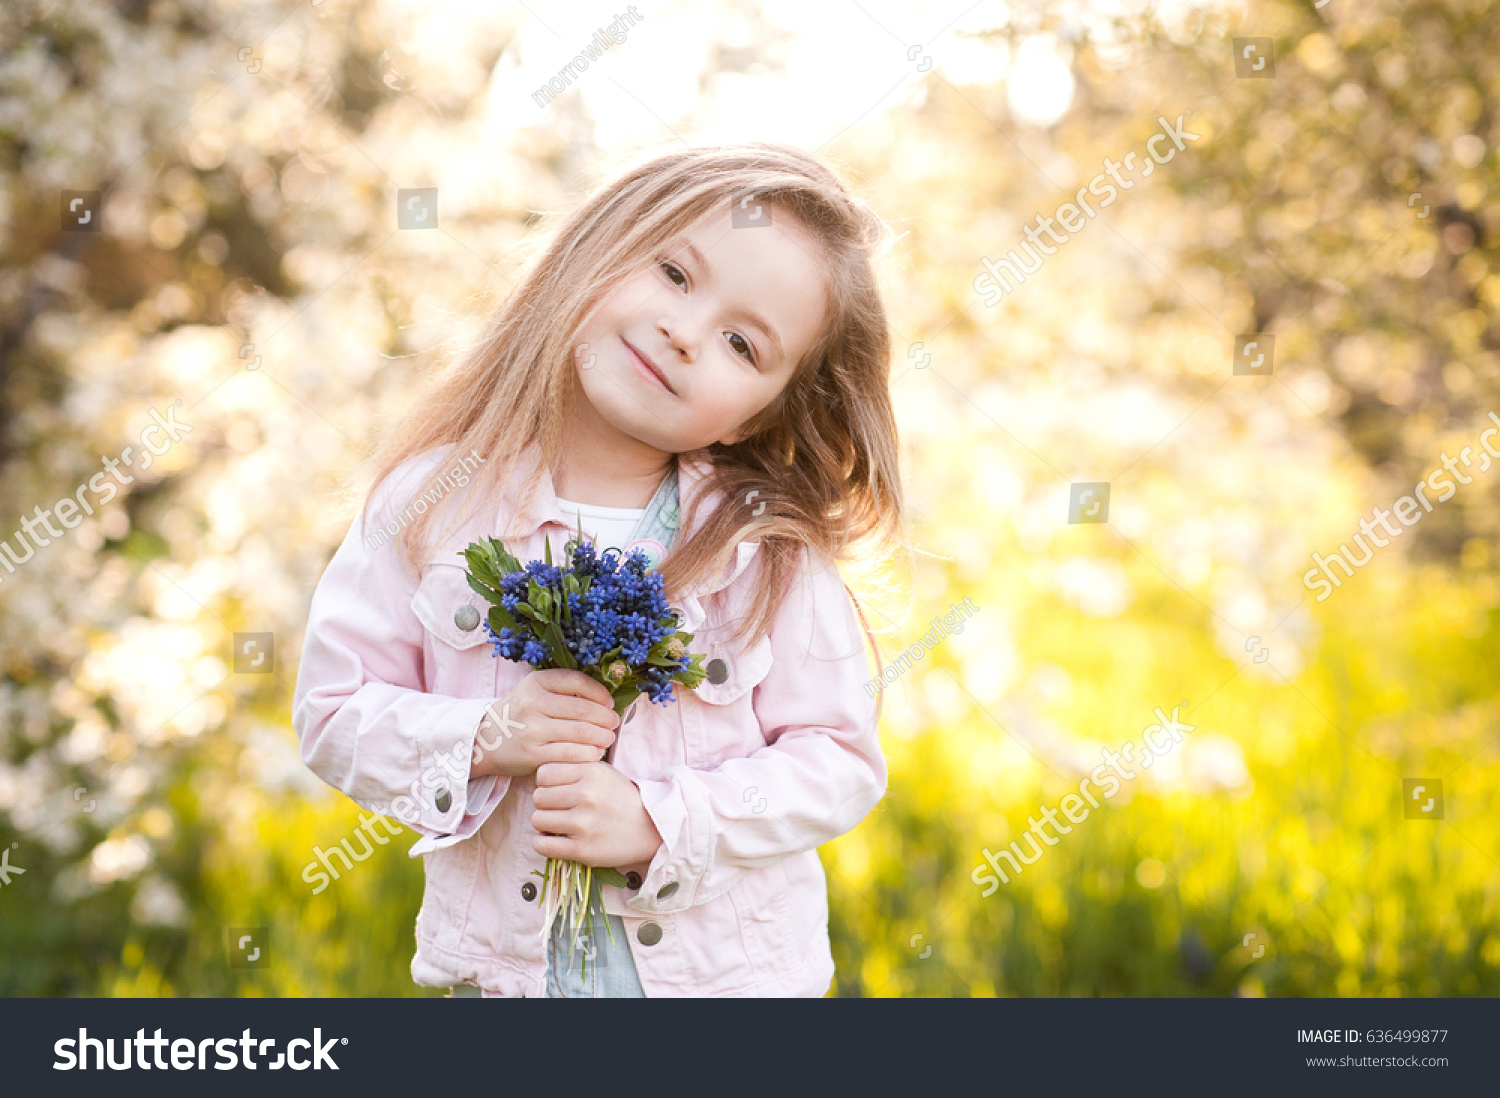 cute baby girl 56 year old stock photo (edit now) 636499877